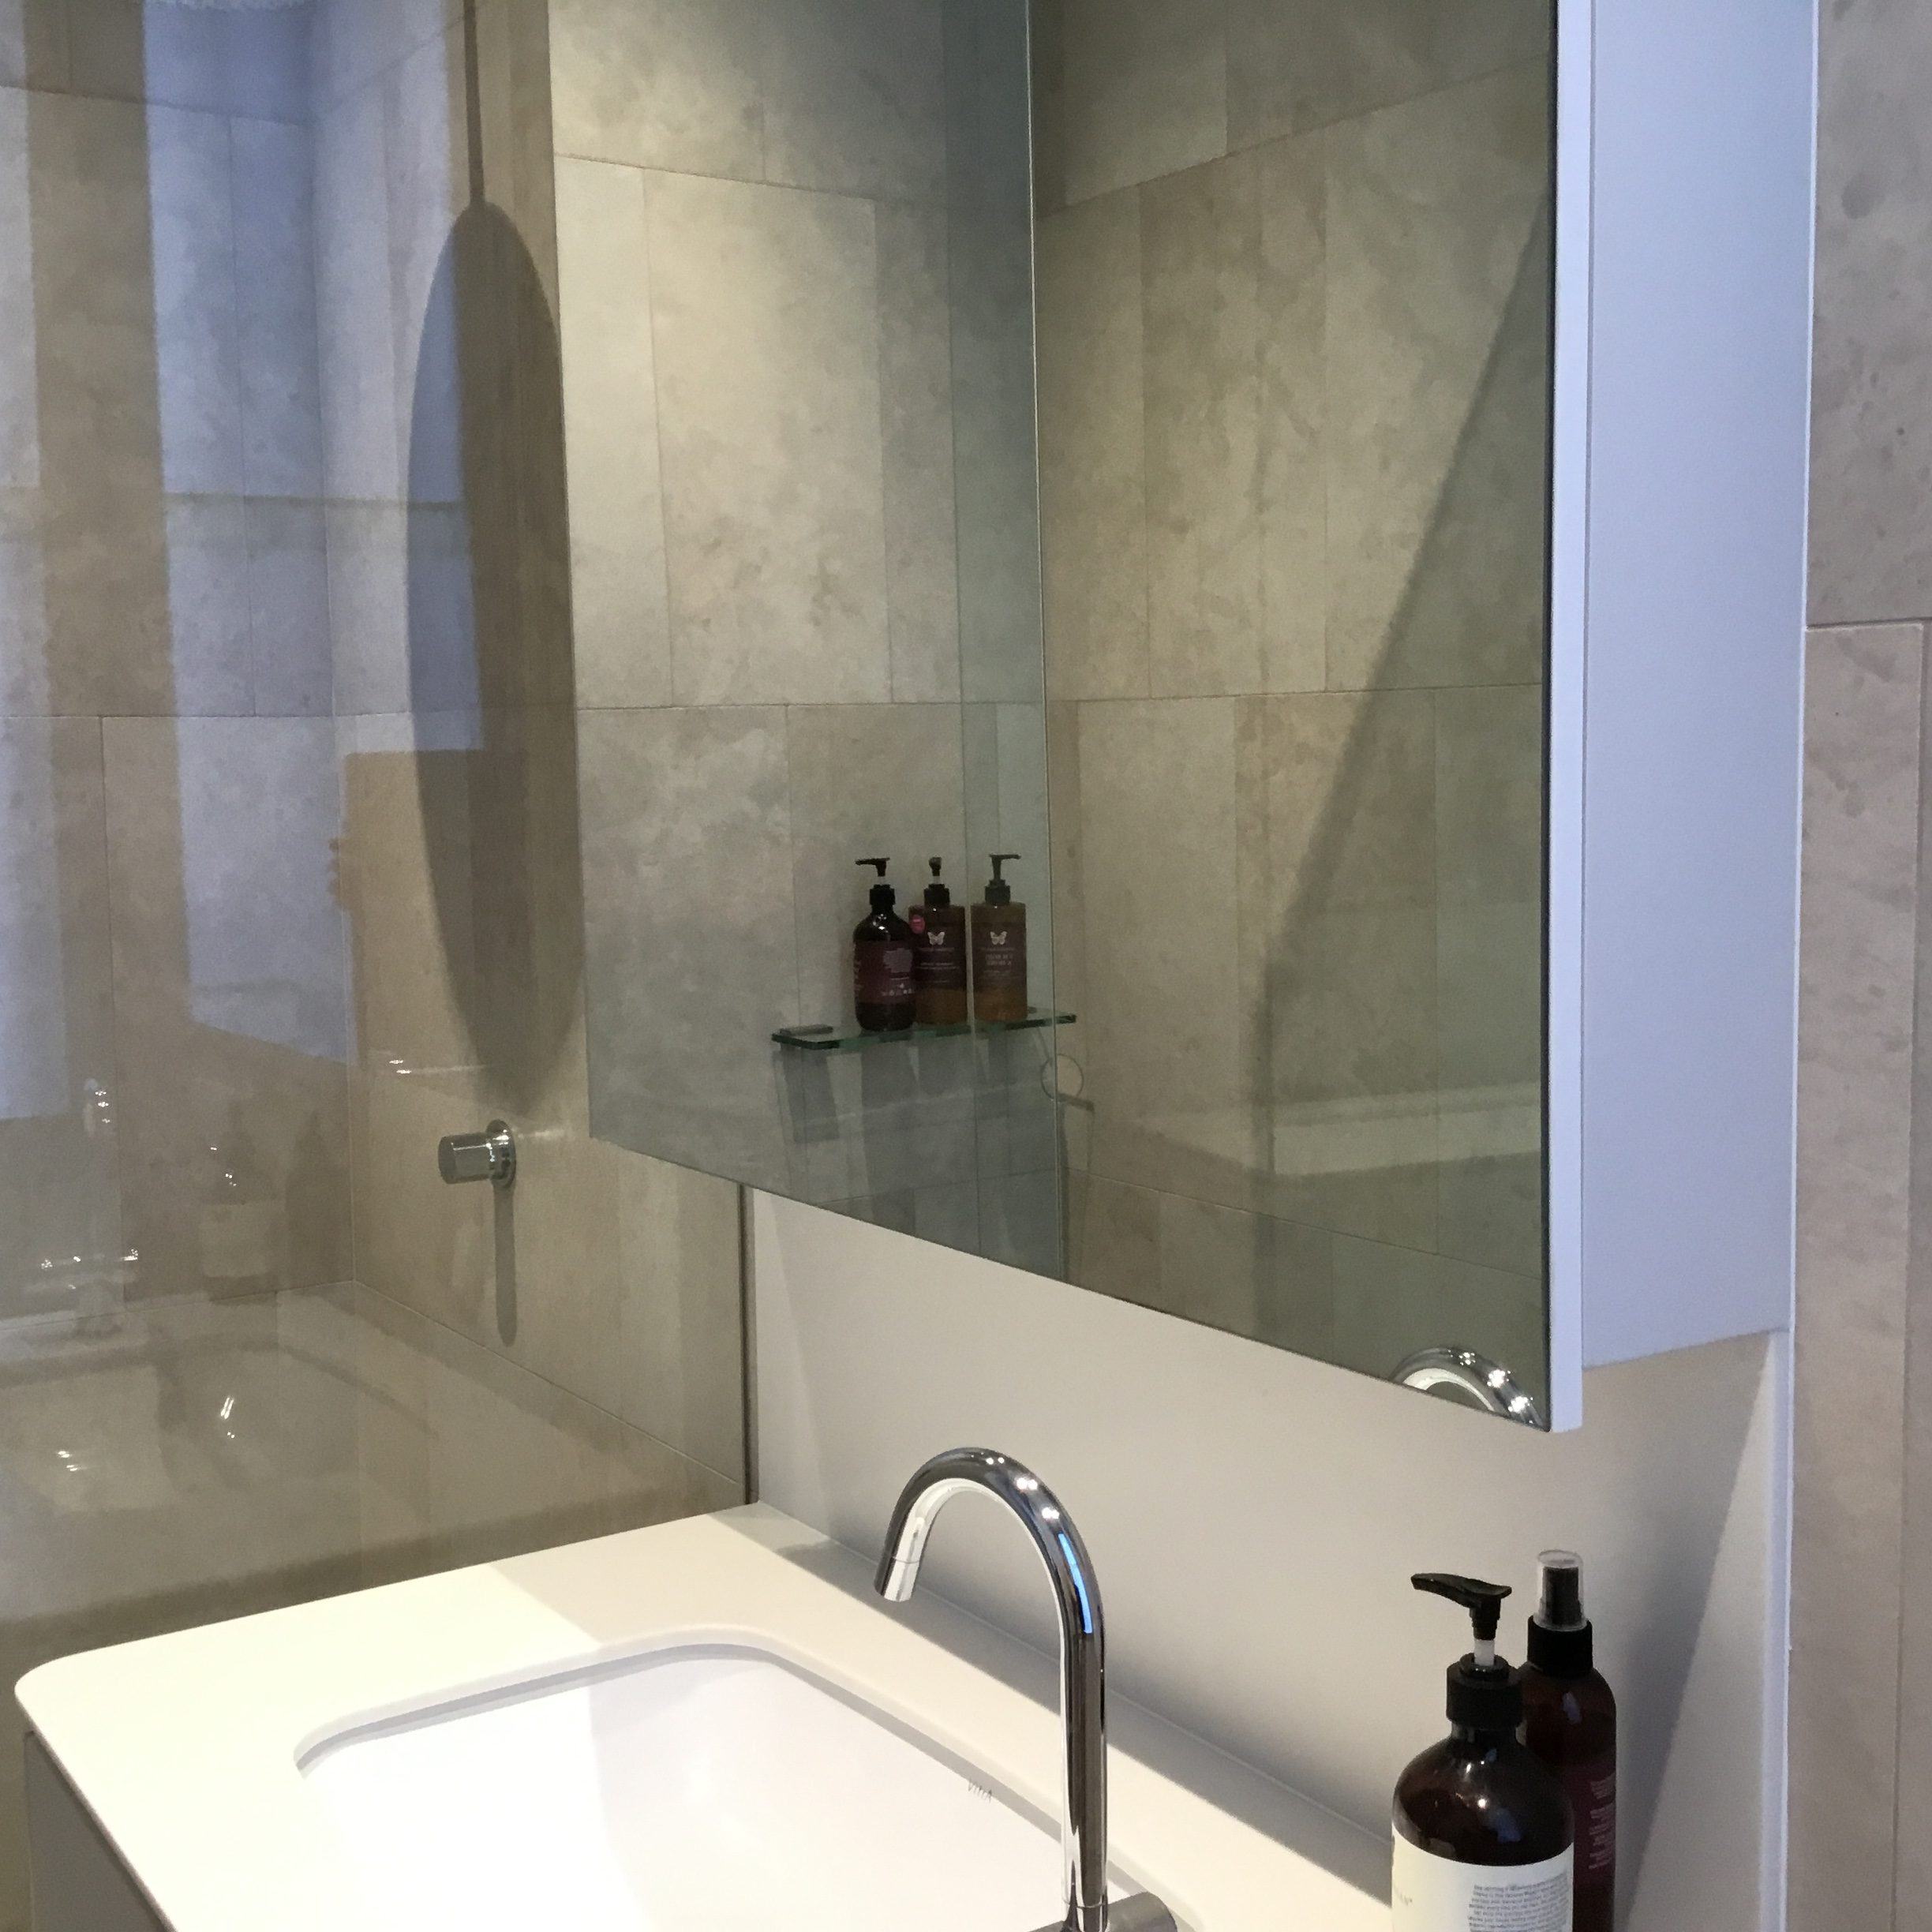 Bathroom Renovations Eastern Suburbs Sydney peter's bathroom renovations and tiling – local in sydney's